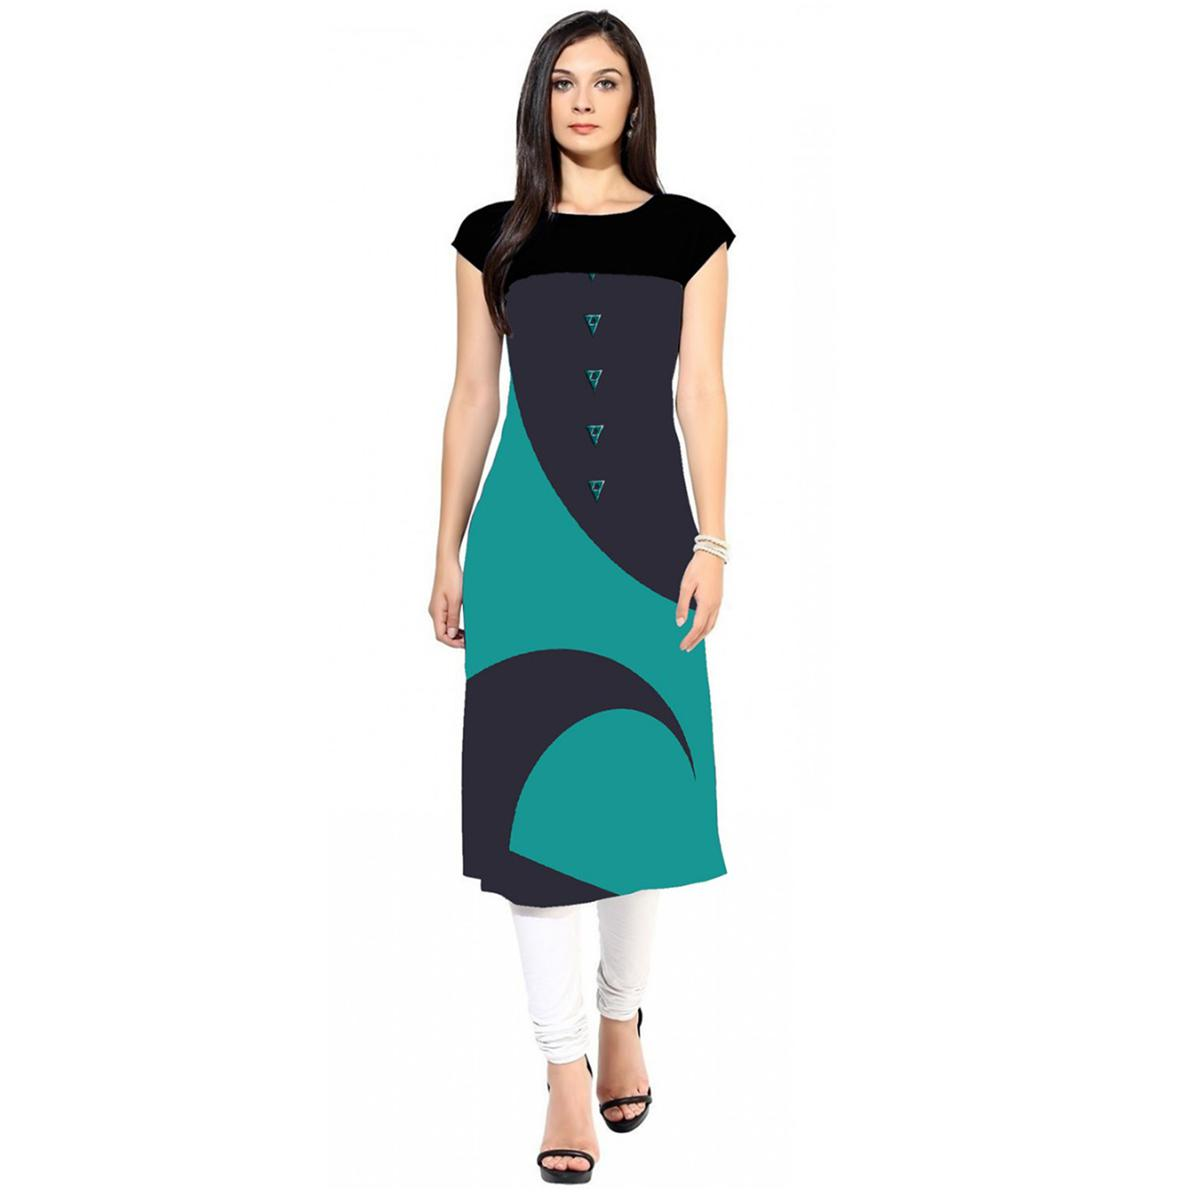 Delightful Navy Blue-Turquoise Green Colored Casual Digital Printed Crepe Kurti